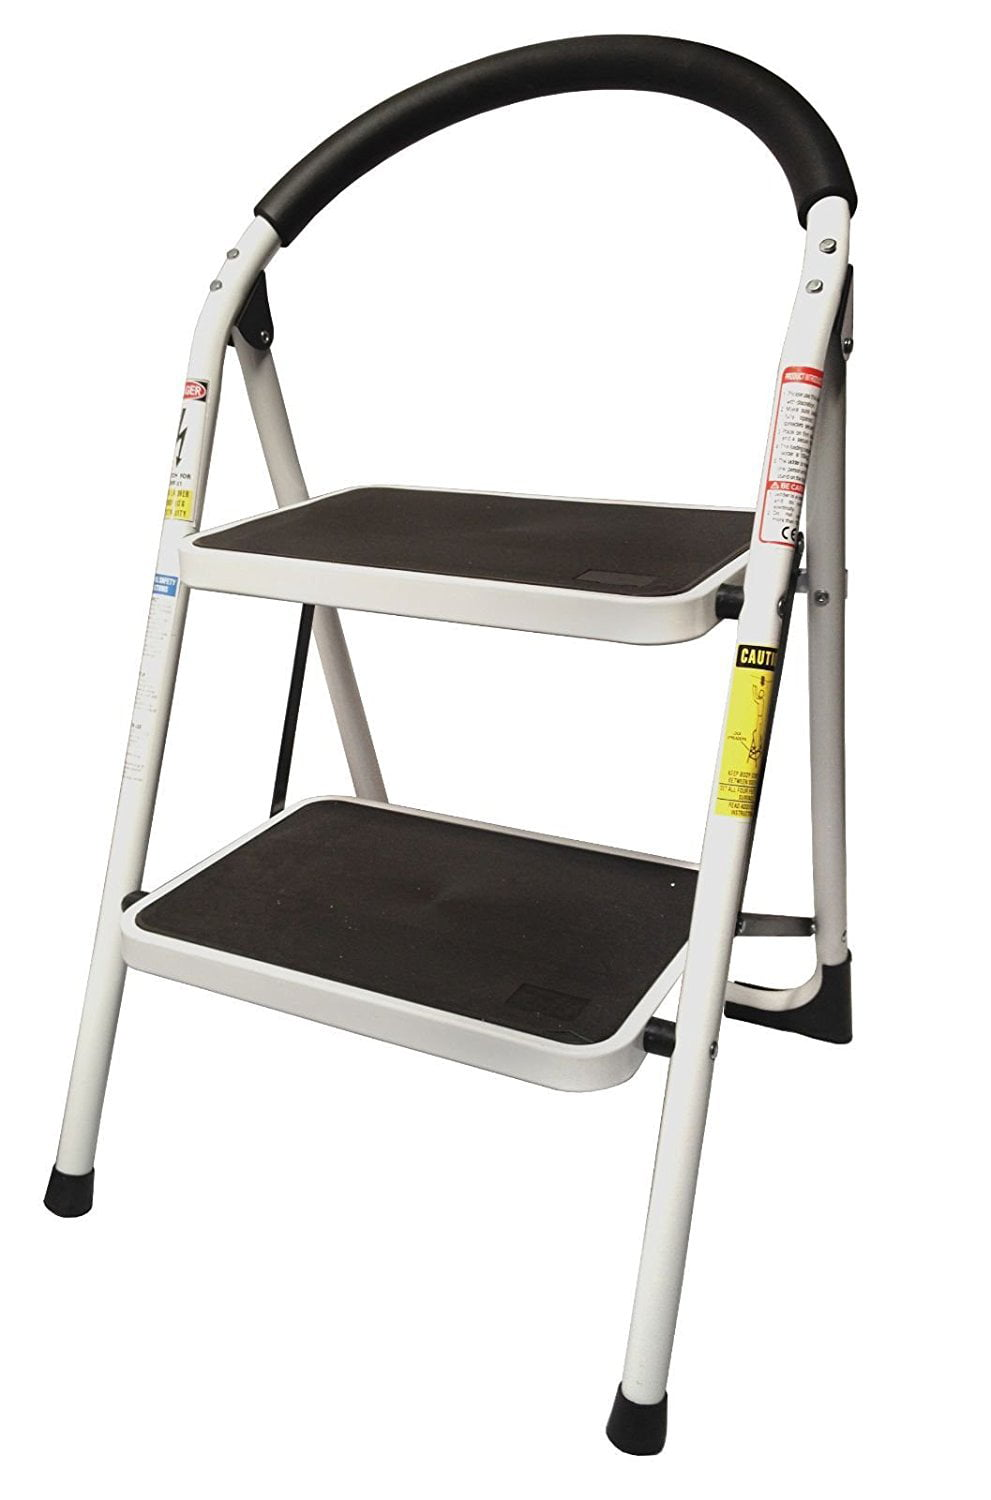 Charmant StepUp Heavy Duty Steel Reinforced Folding 2 Step Ladder Stool   330 Lbs  Capacity   Walmart.com